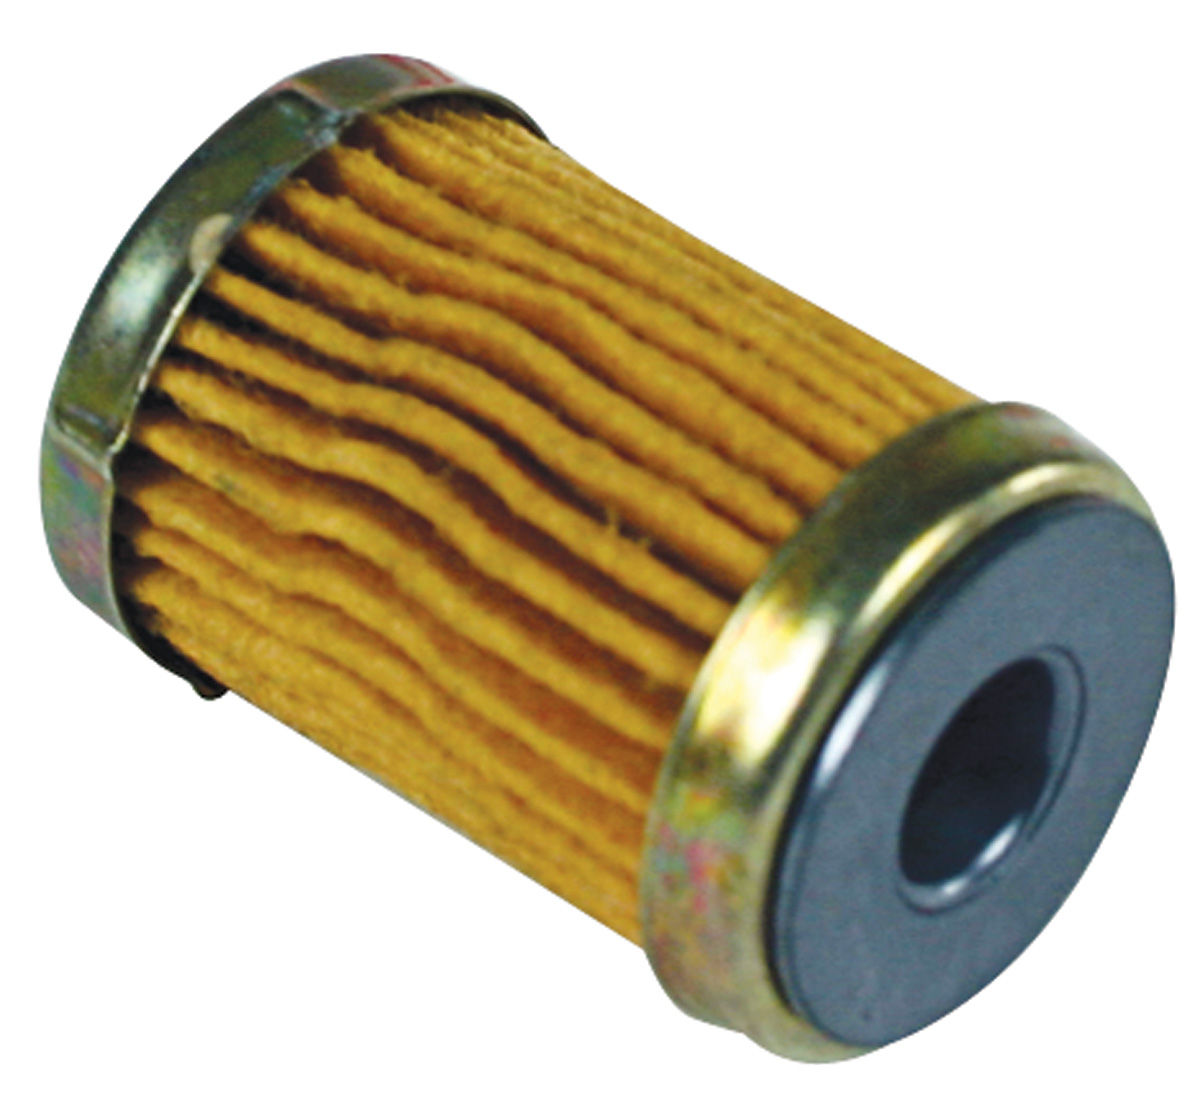 Fuel Filter Element, Edelbrock, Q-Jet, 1901/1902